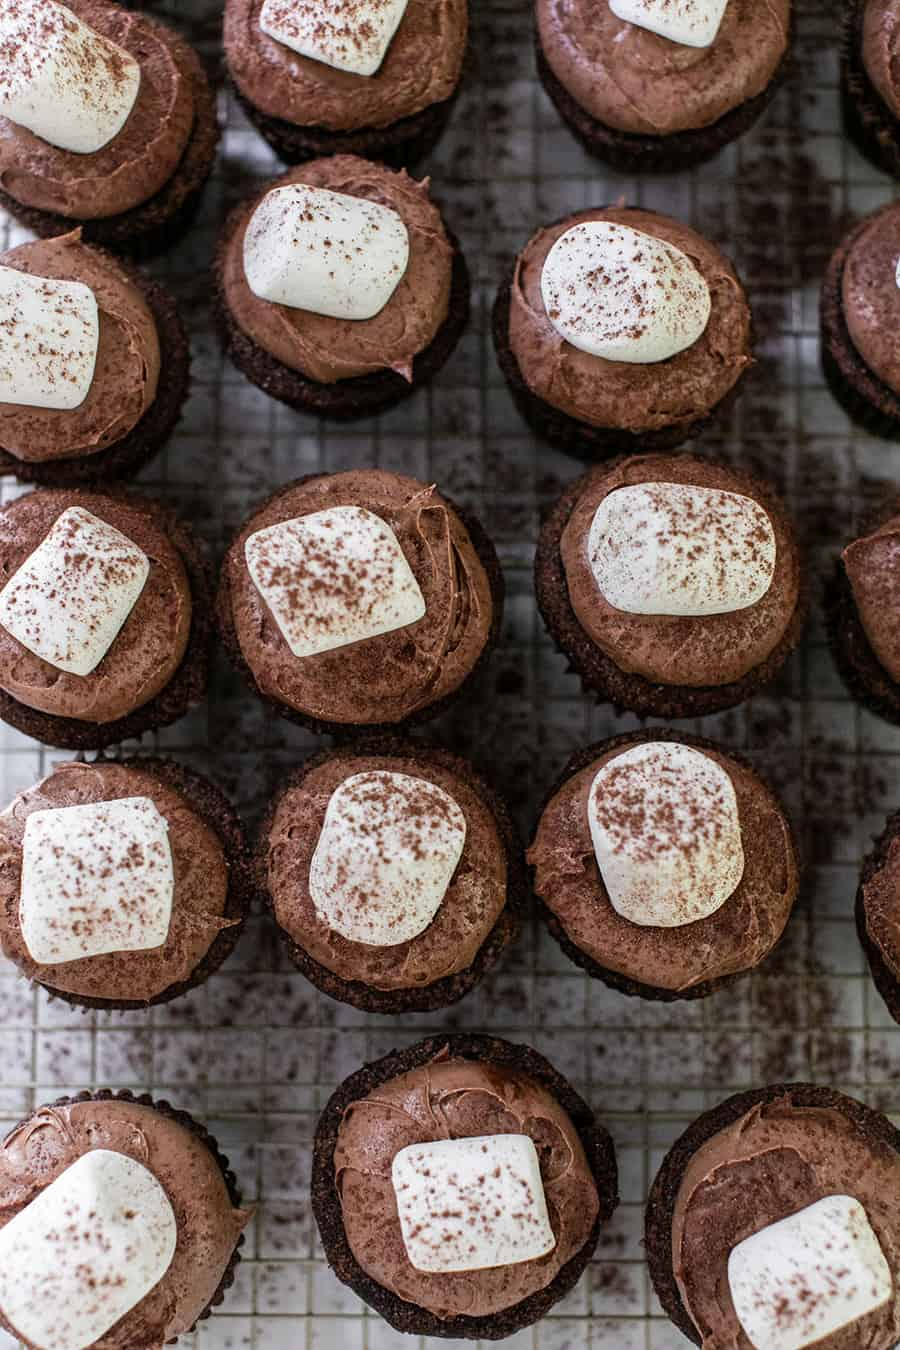 Hot chocolate cupcakes with marshmallows and sprinkled with hot cocoa.